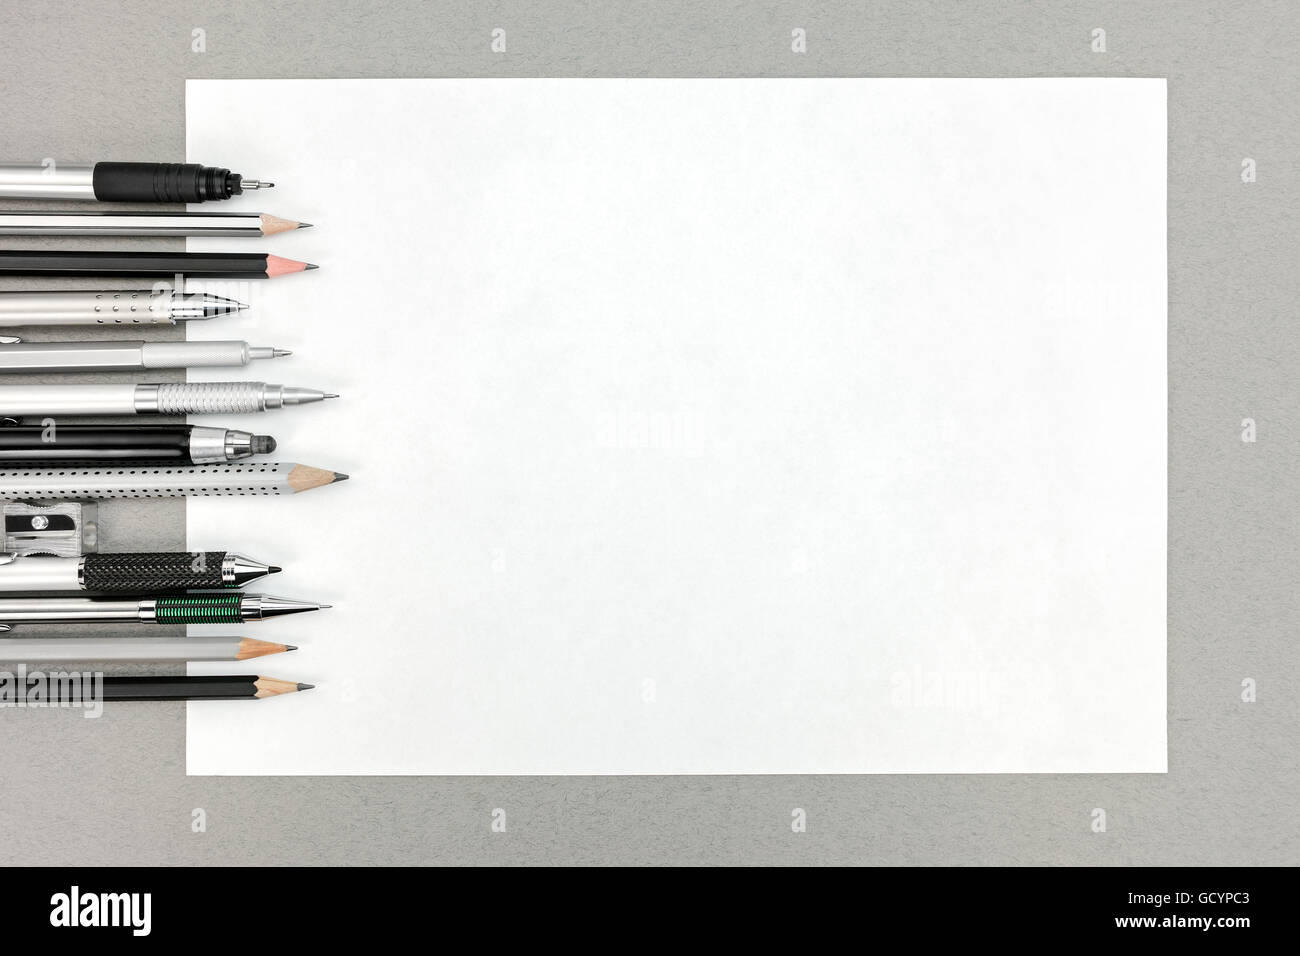 office drawing tools. stock photo various drawing tools and blank sheet of paper on gray office desk table r